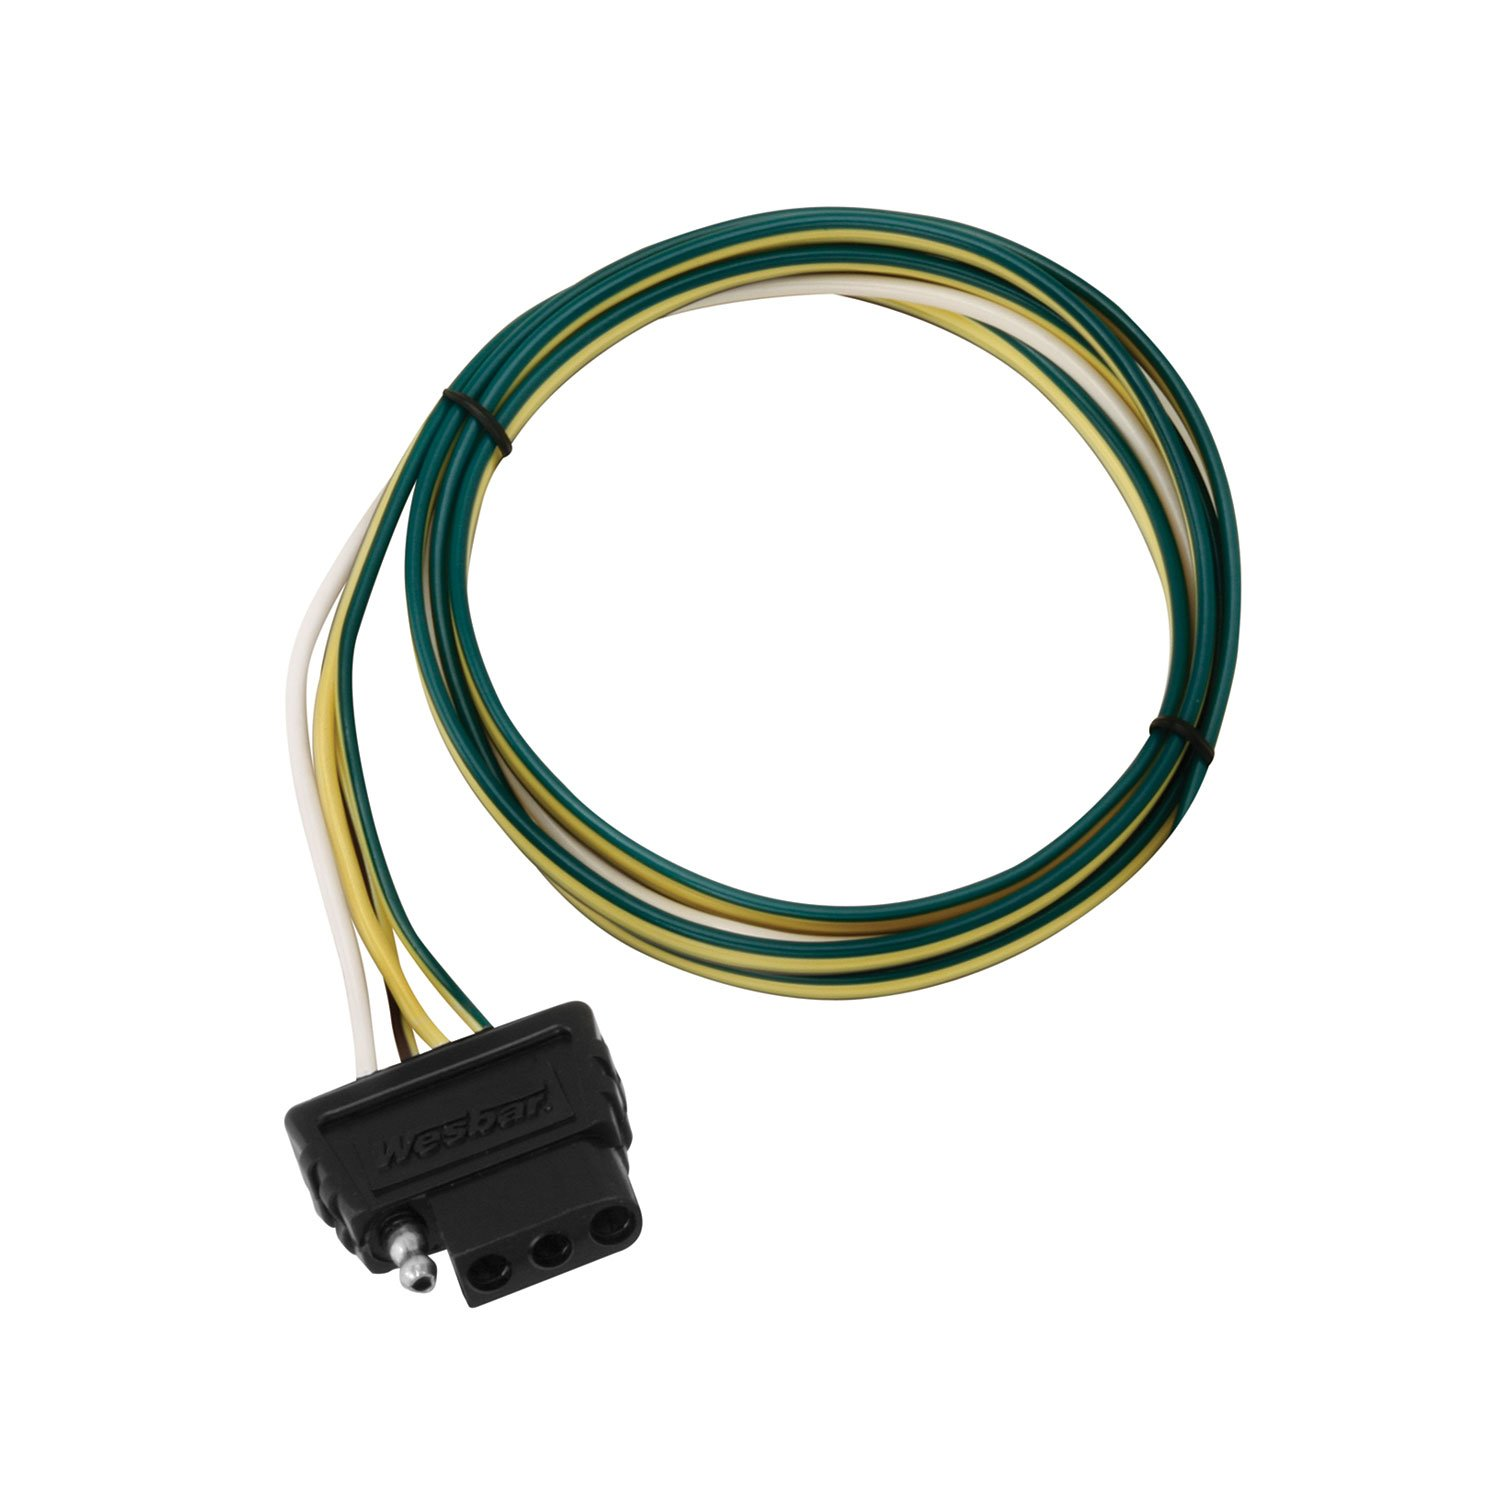 Wesbar Wiring Harness Library 707105 5 Way Flat Trailer Wire Connector W002290 Amazoncom 707275 4 Car End Automotive